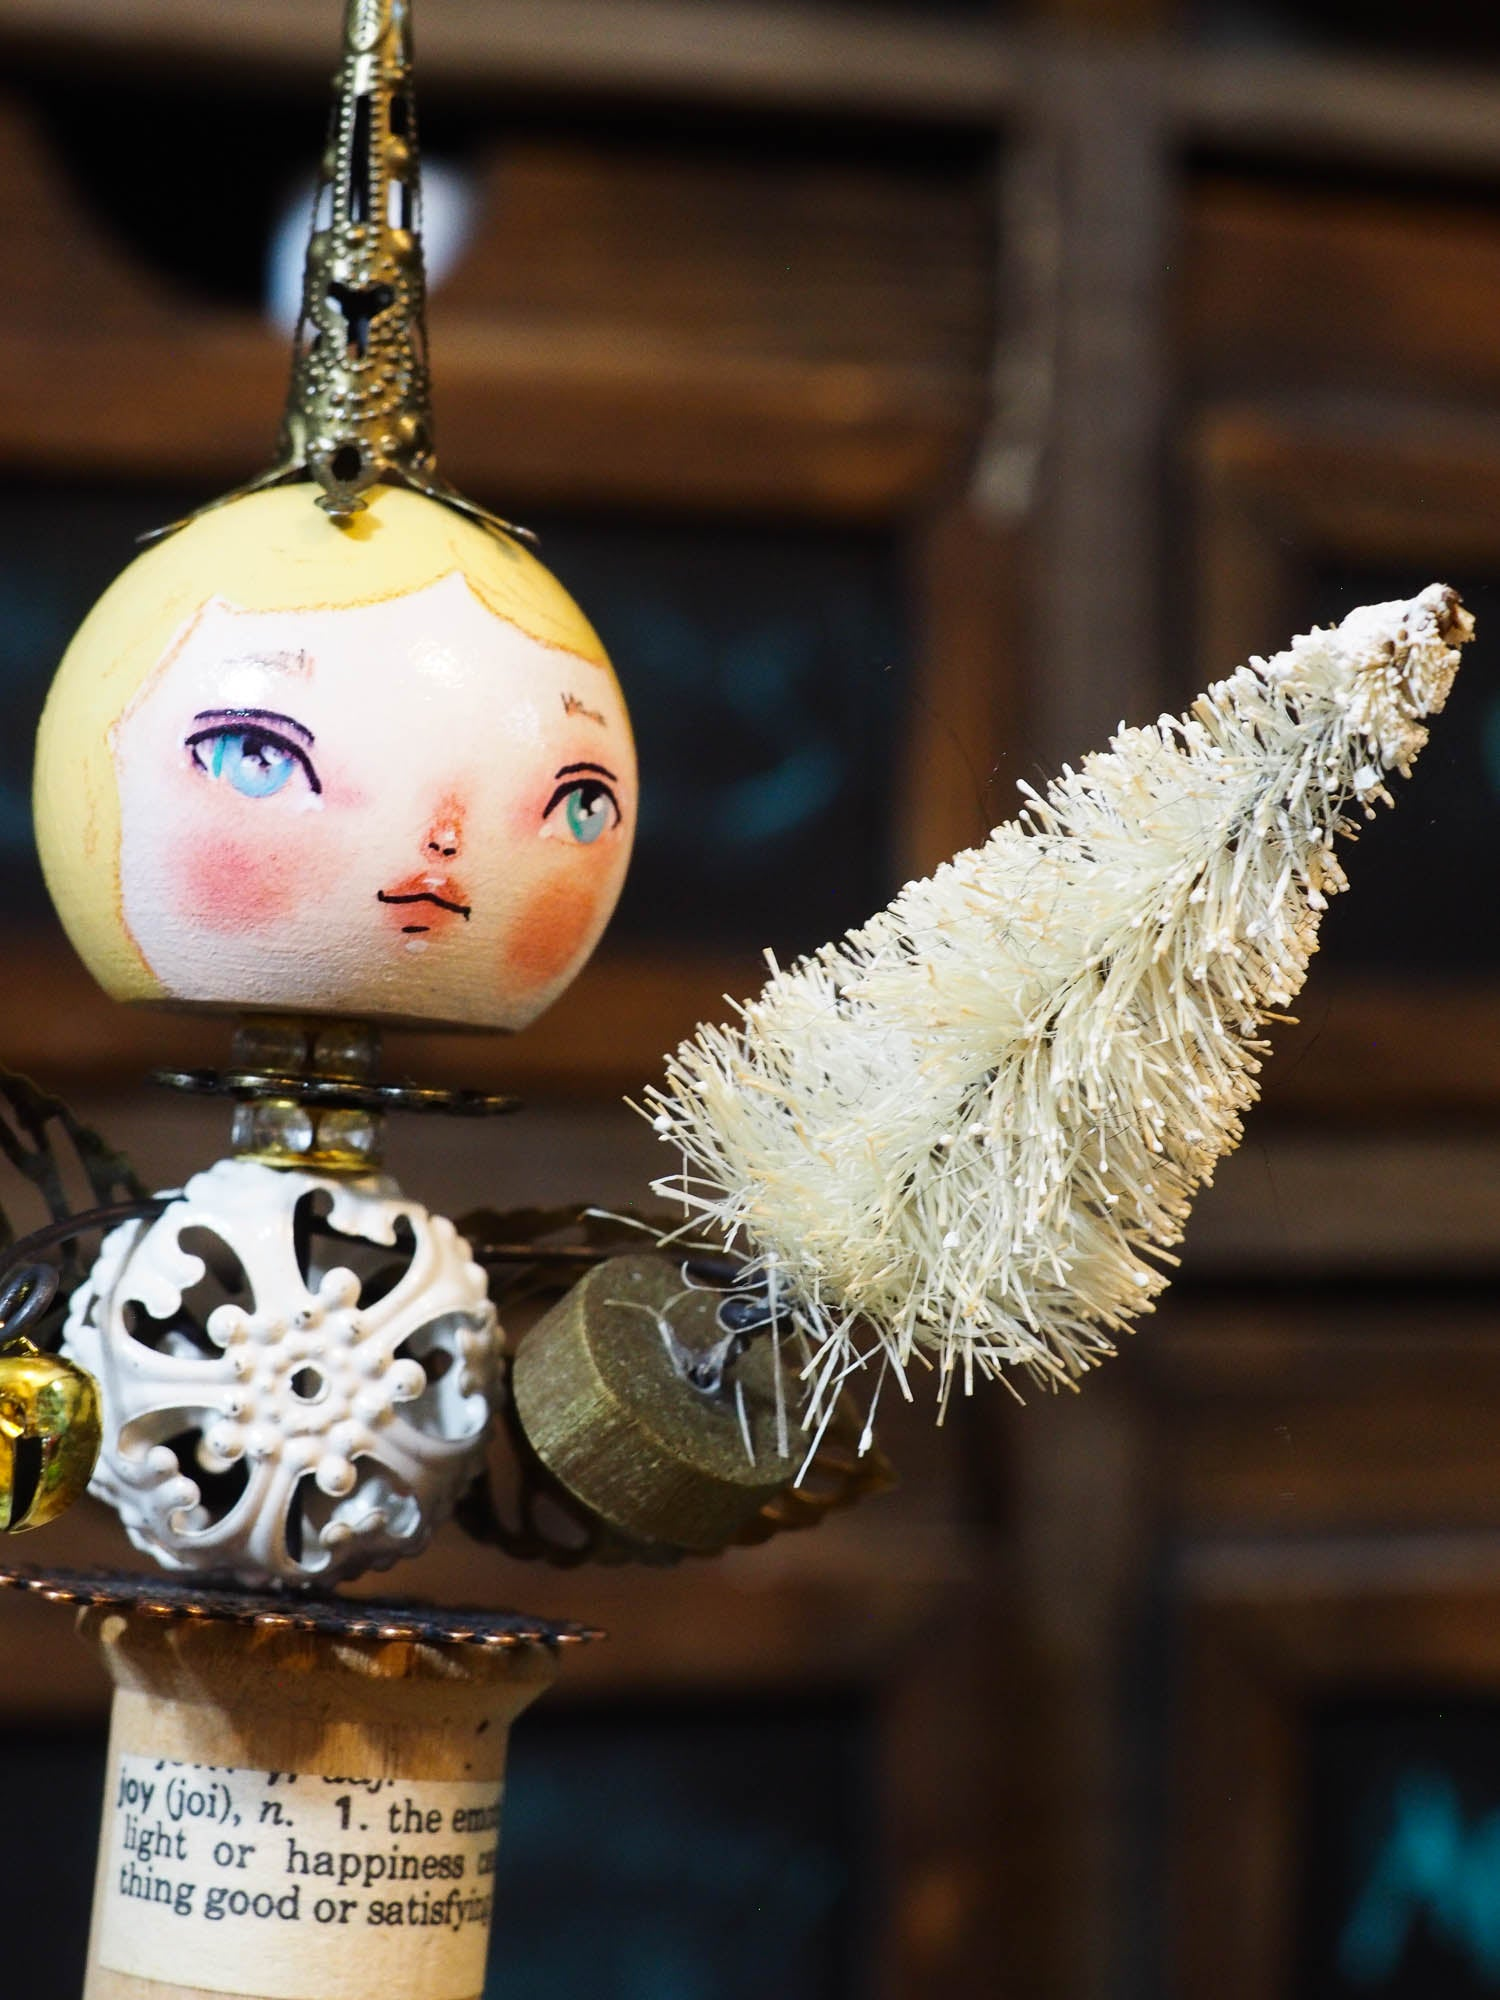 ANGEL No. 7 - An original handmade Christmas tree ornament by Danita, Original Art by Danita Art